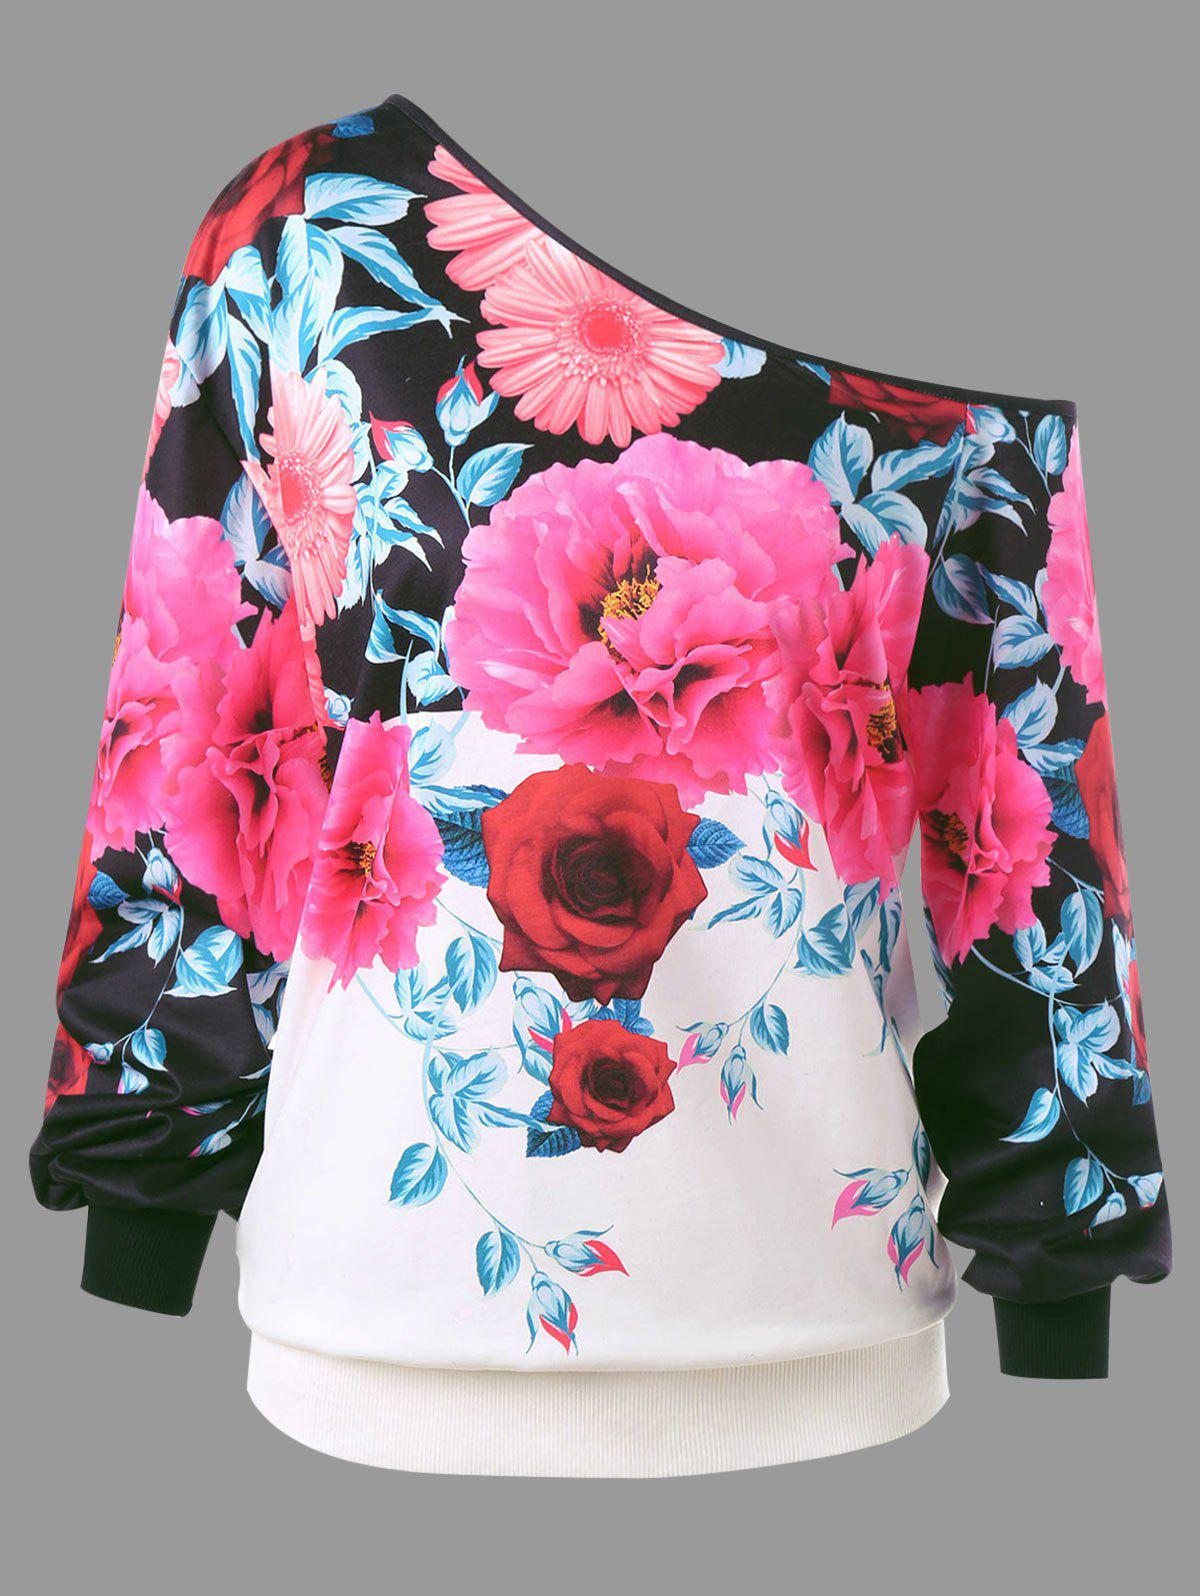 Plus Size Skew Neck Floral Sweatshirt plus size skew neck floral sweatshirt